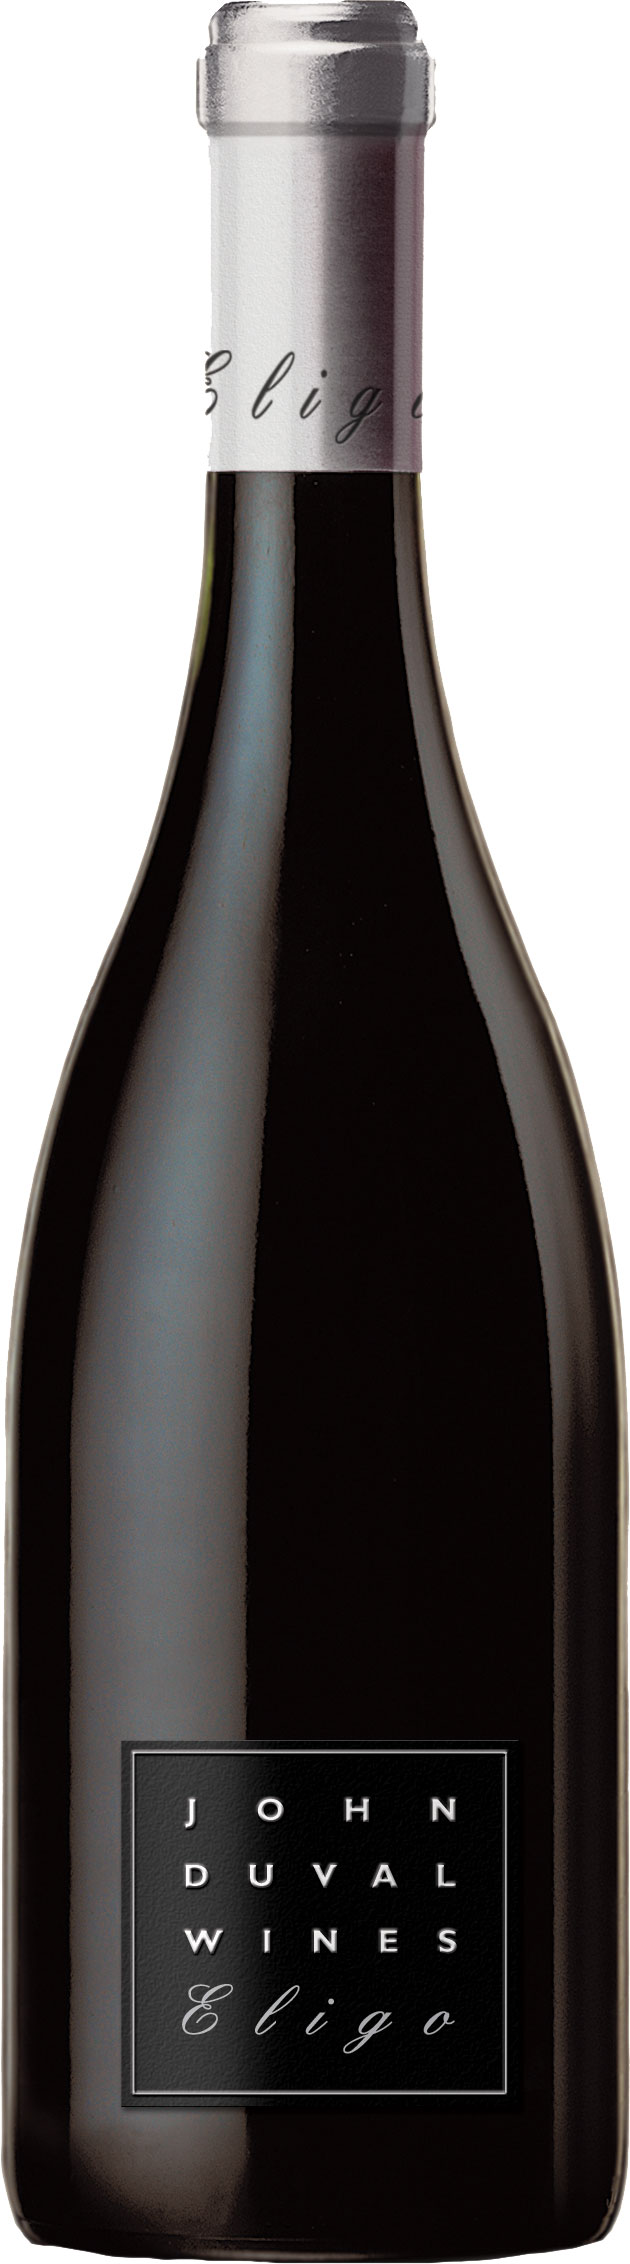 John Duval - Eligo Barossa Valley Shiraz 2015 75cl Bottle